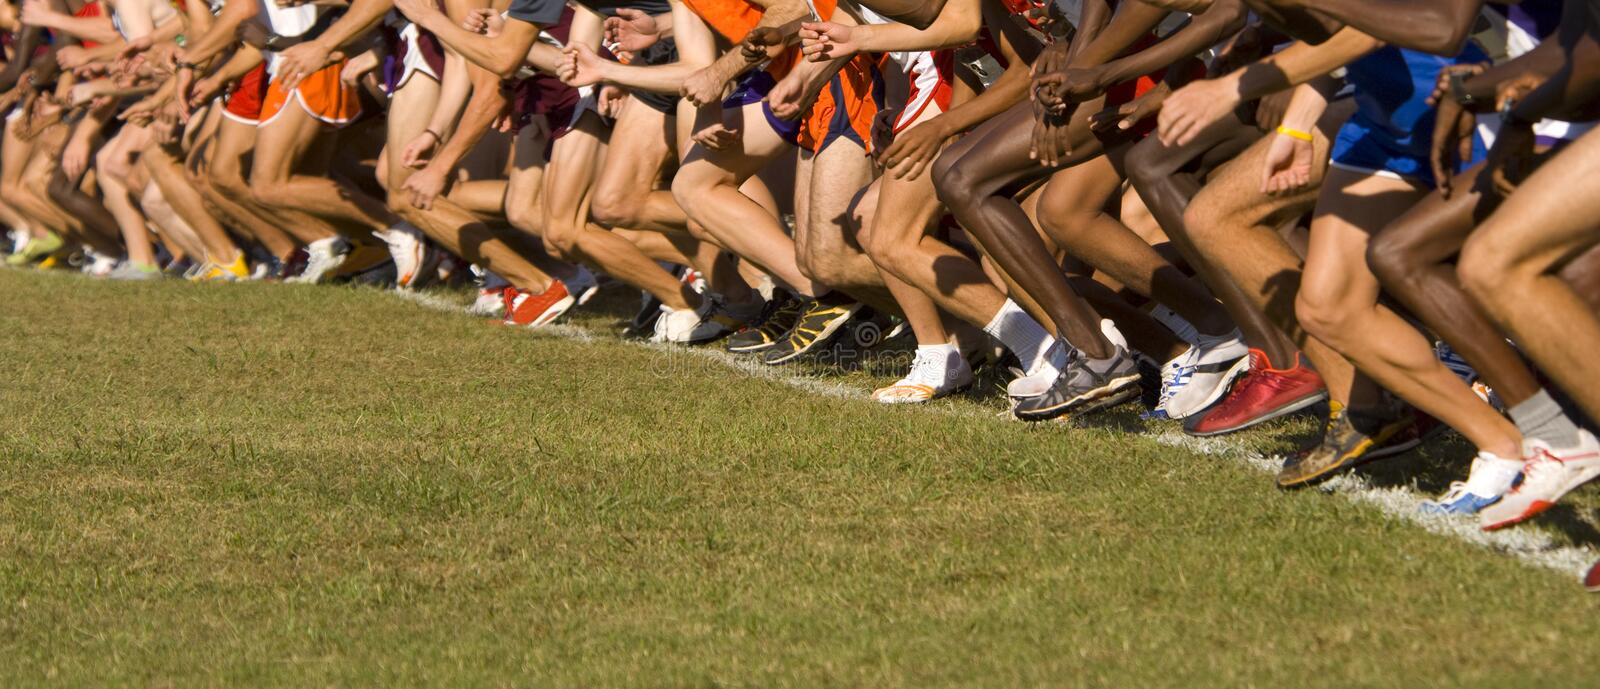 Race! stock images